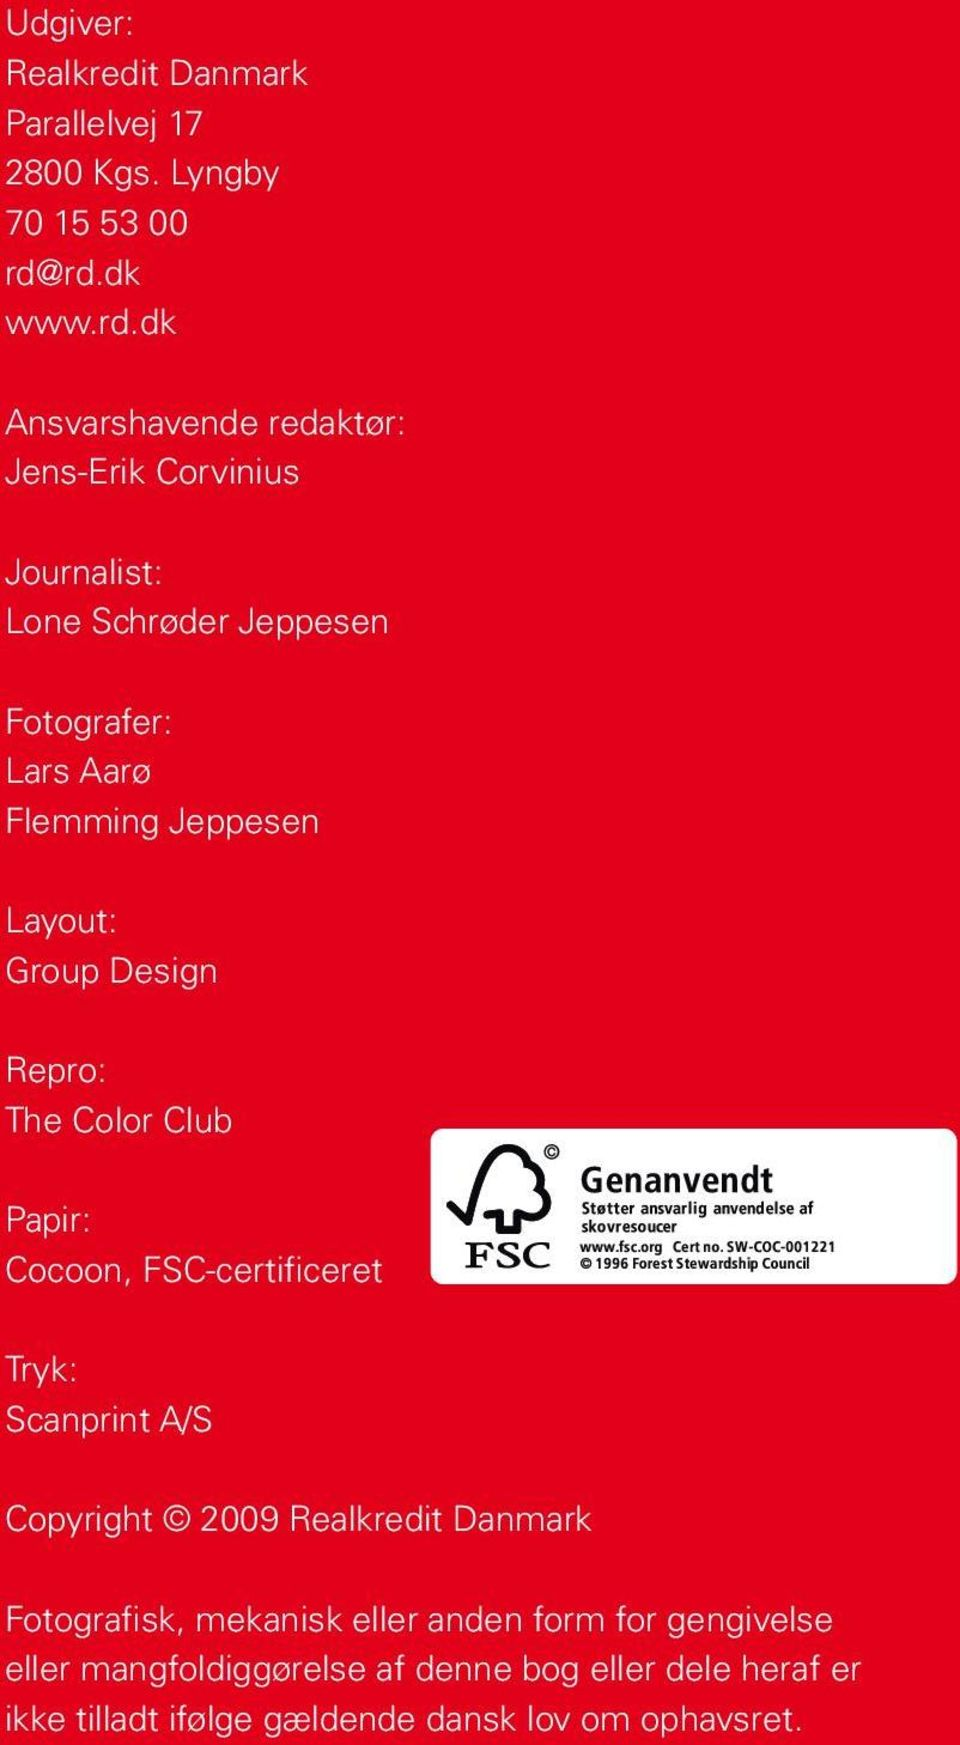 Jeppesen Layout: Group Design Repro: The Color Club Papir: Cocoon, FSC-certificeret Tryk: Scanprint A/S Copyright 2009 Realkredit